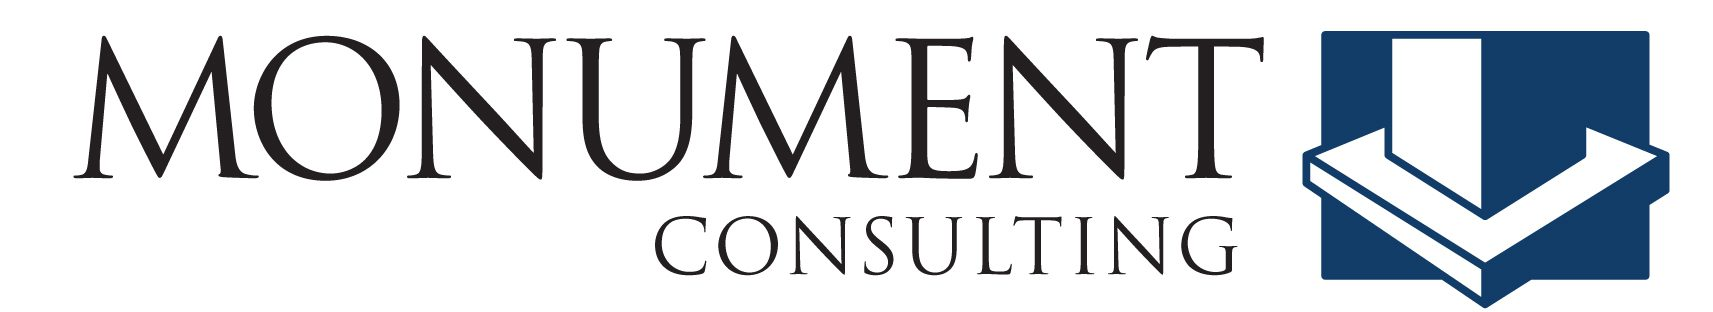 Monument Consulting logo